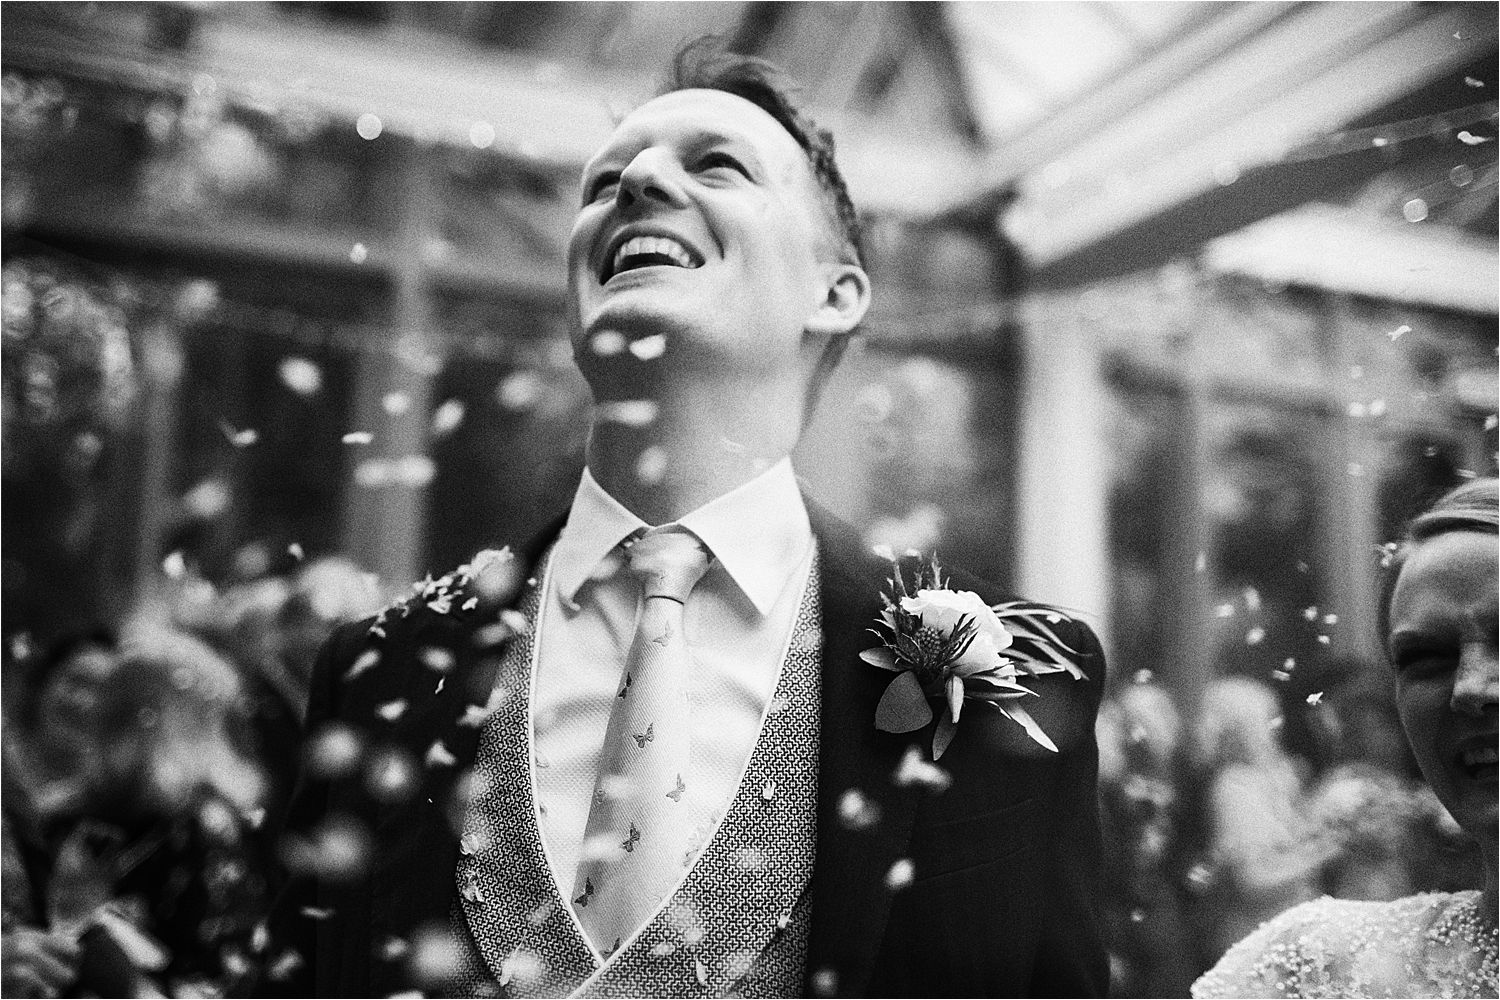 Bride groom in indoor confetti shower at rainy north west wedding